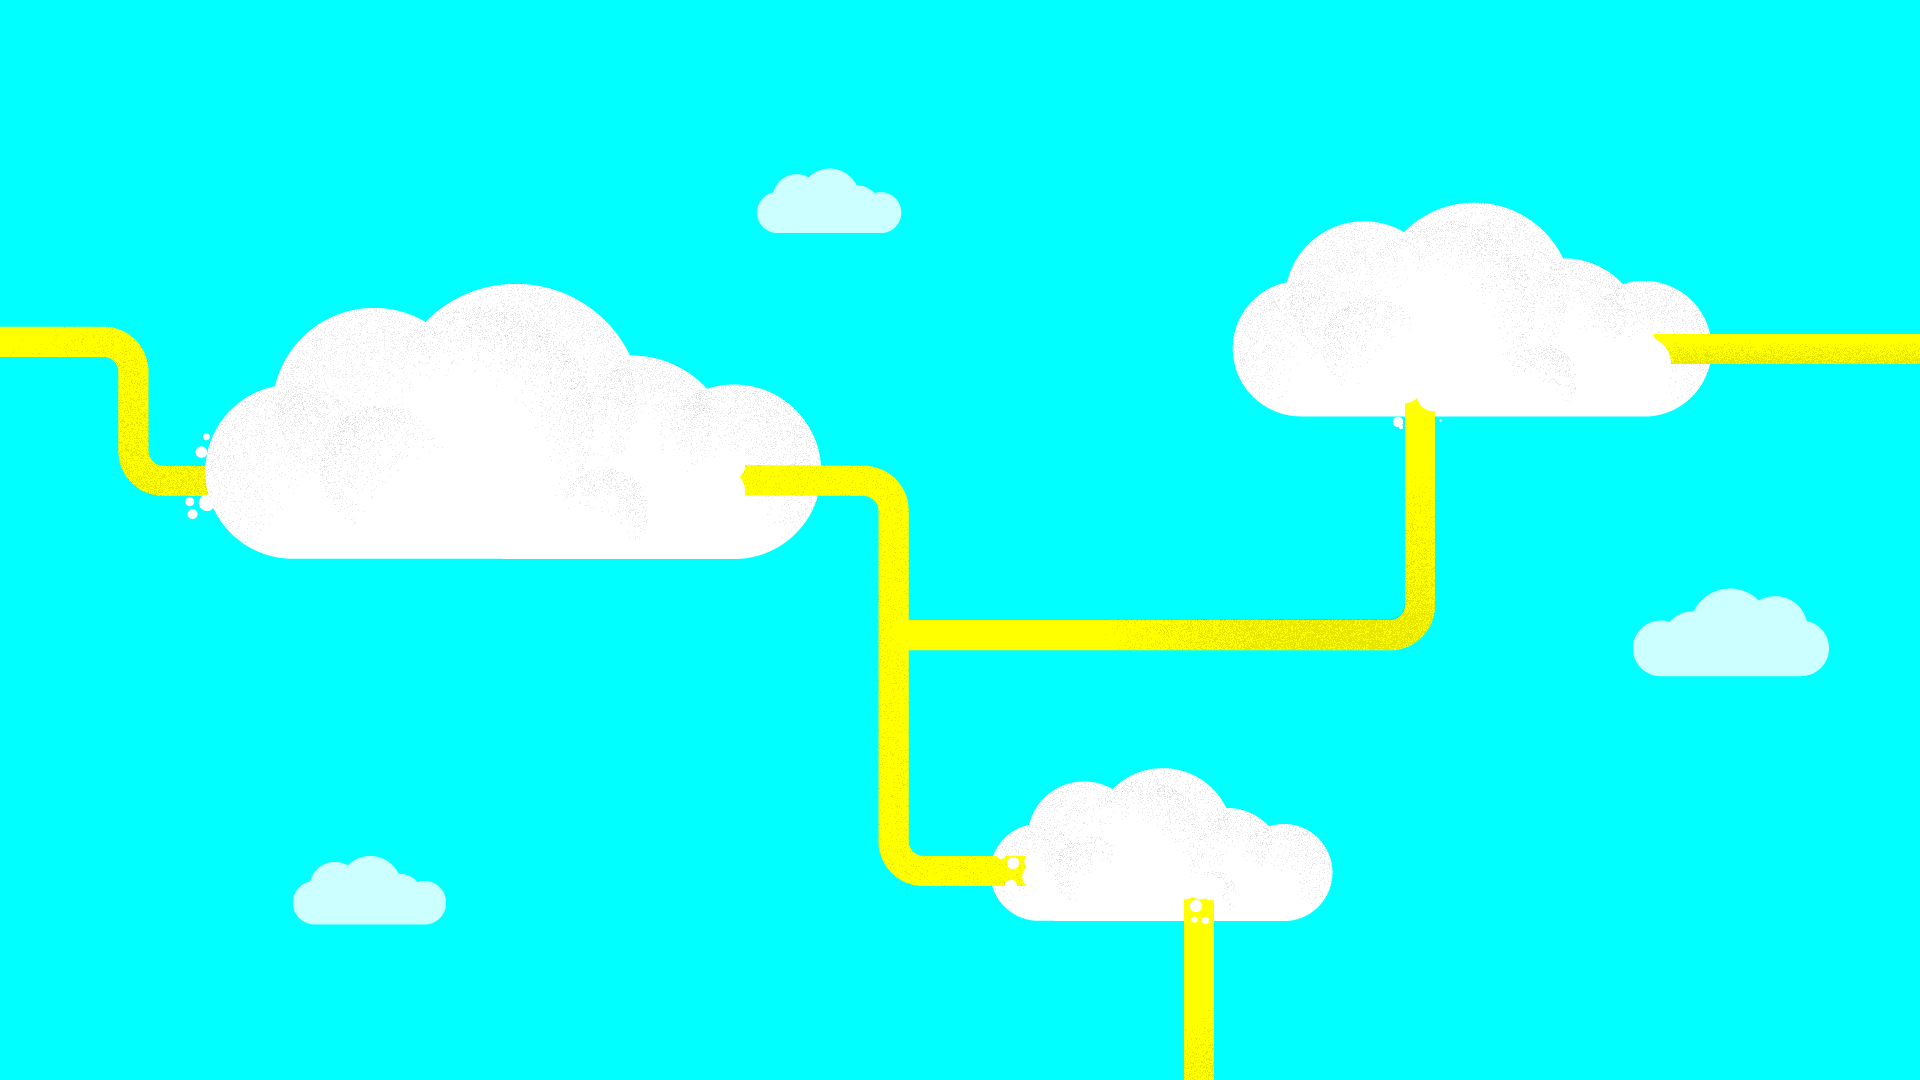 Pipes leading through the clouds